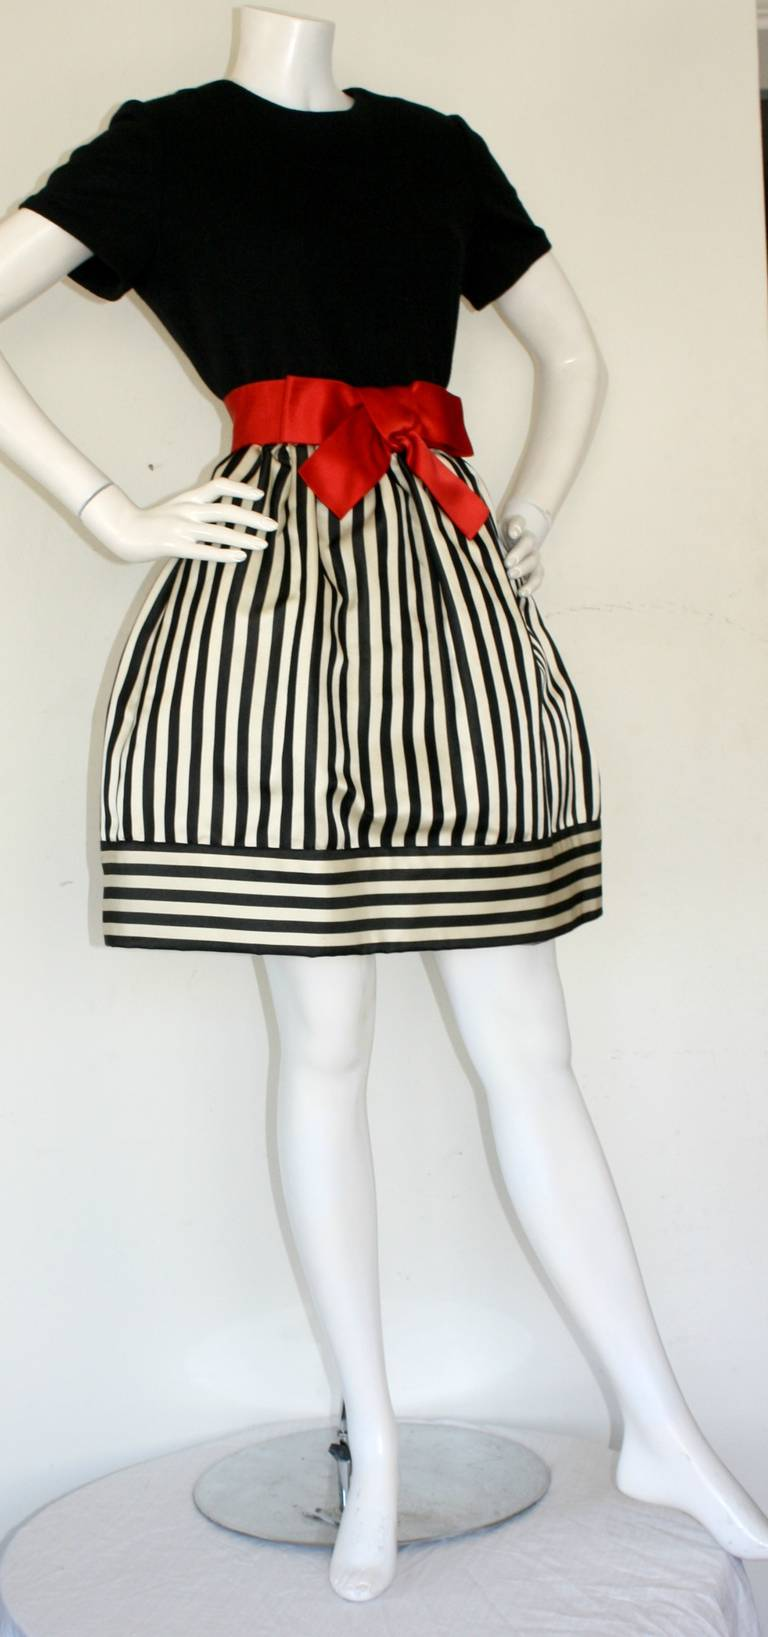 Bill Blass Vintage Black & White Stripe Dress w/ Red Bow Belt 7